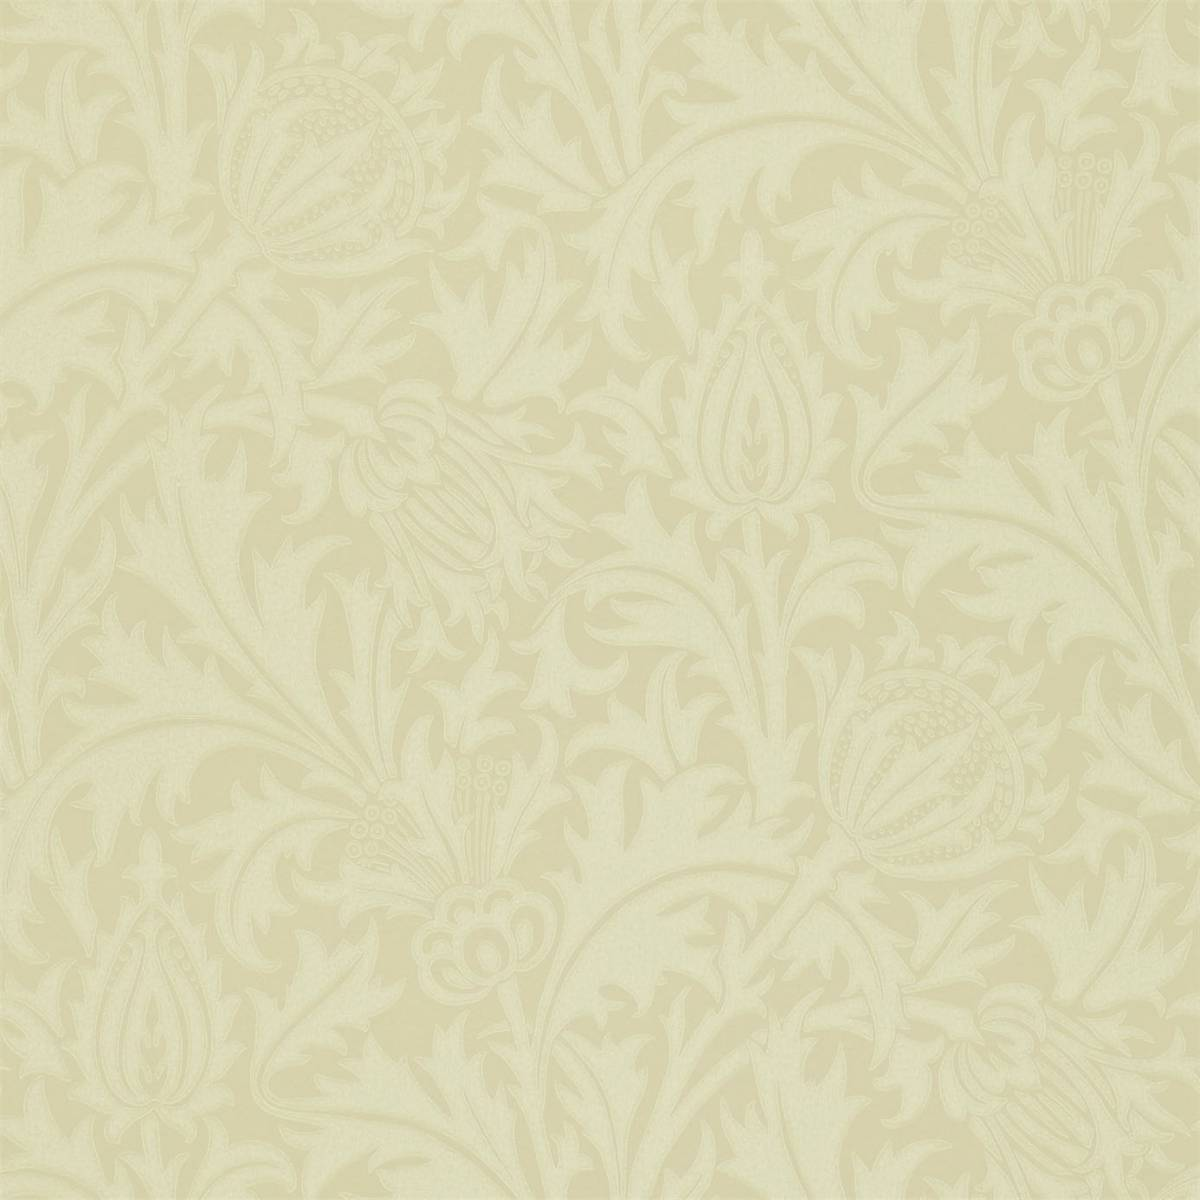 Thistle Wallpaper Ivory 210485 William Morris Co